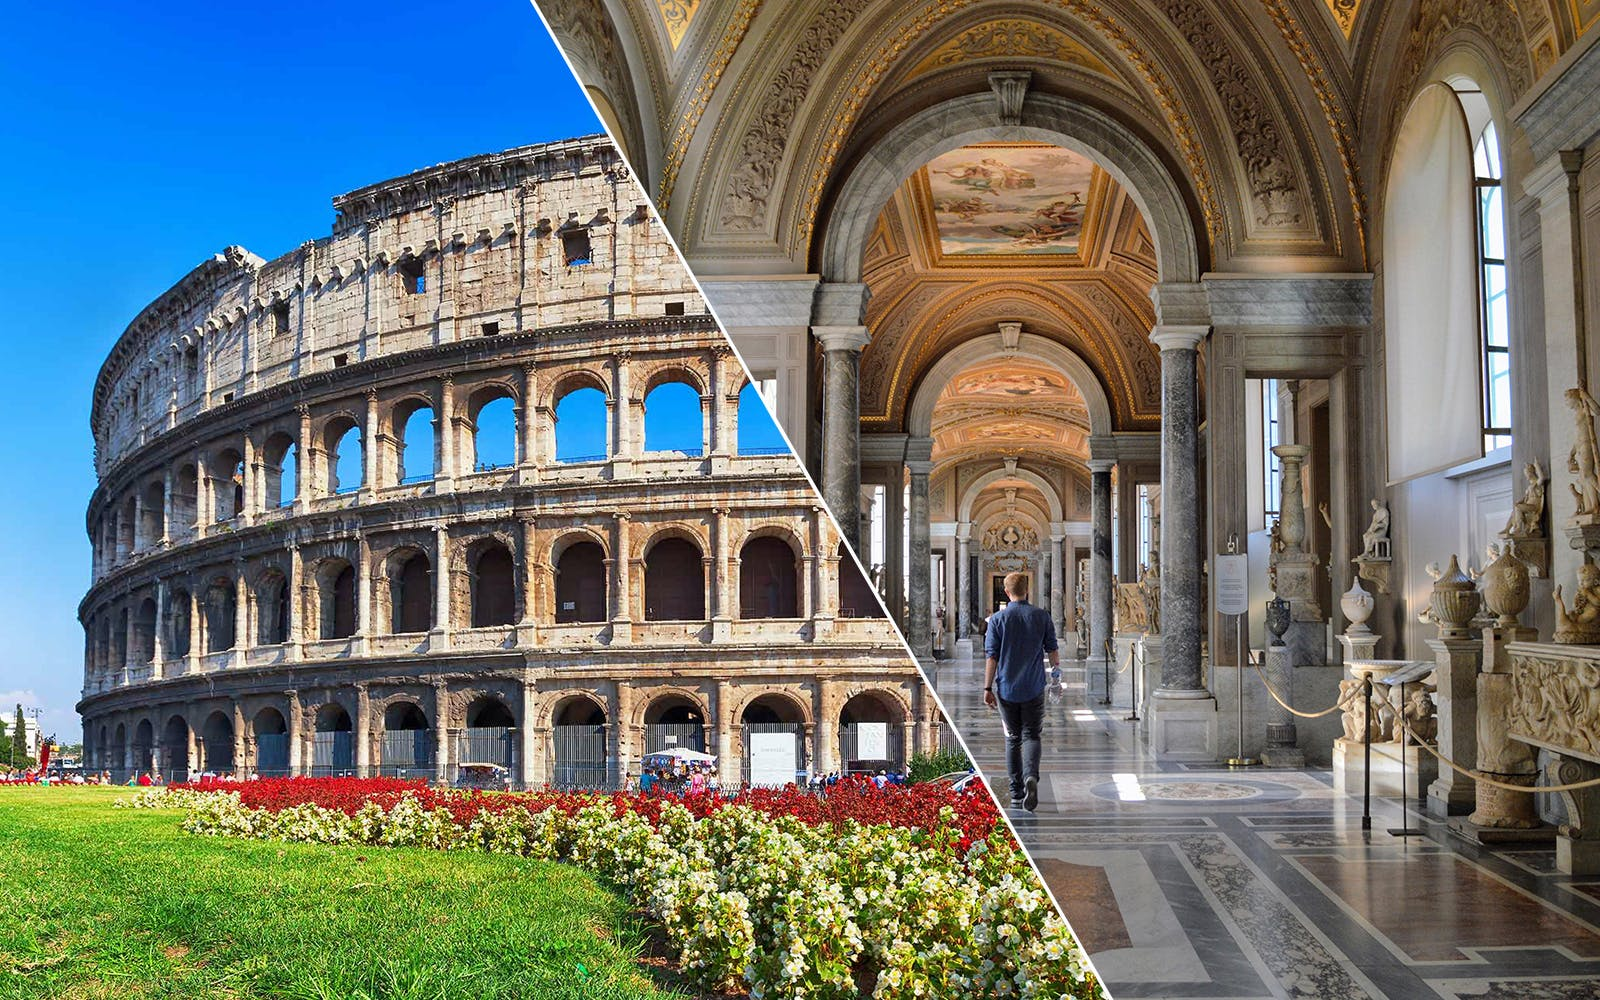 skip the line guided tour of colosseum, vatican museums & sistine chapel-1